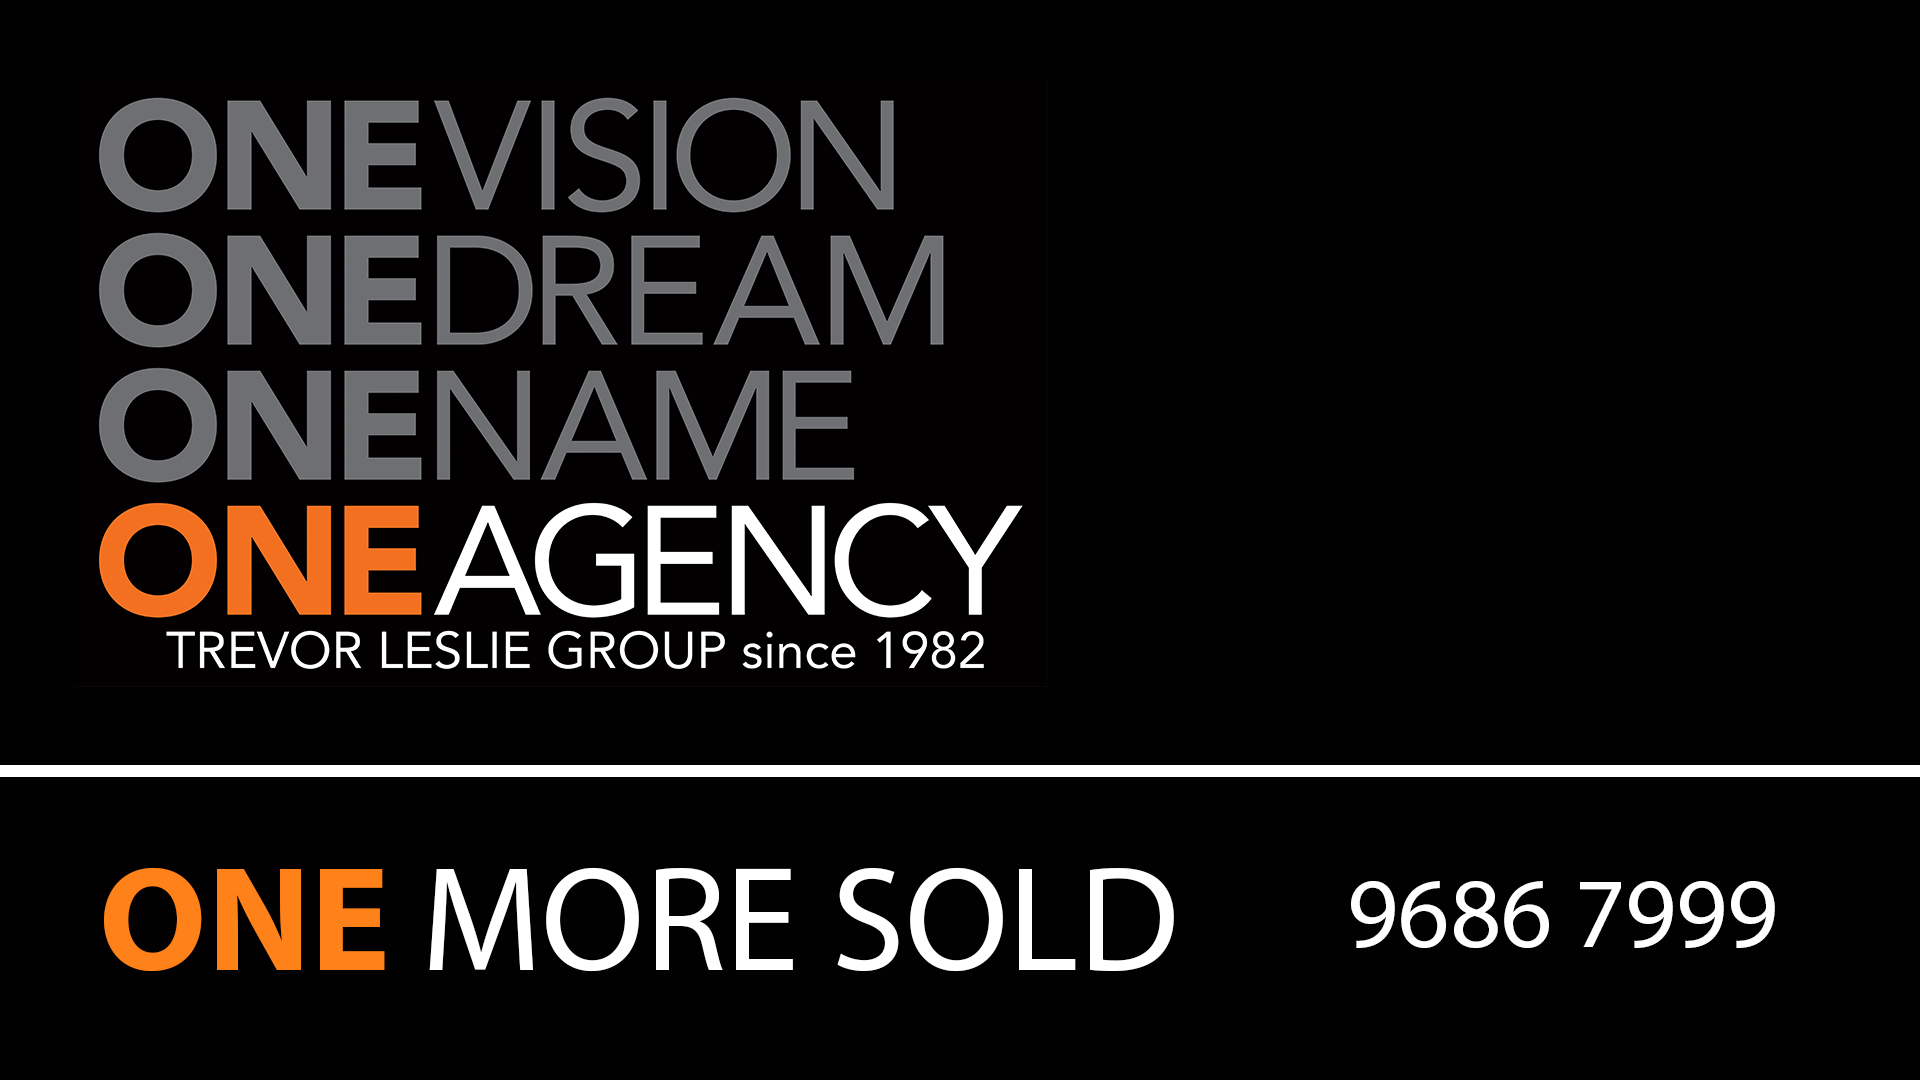 One Agency Trevor Leslie Group since 1982, Baulkham Hills, 2153